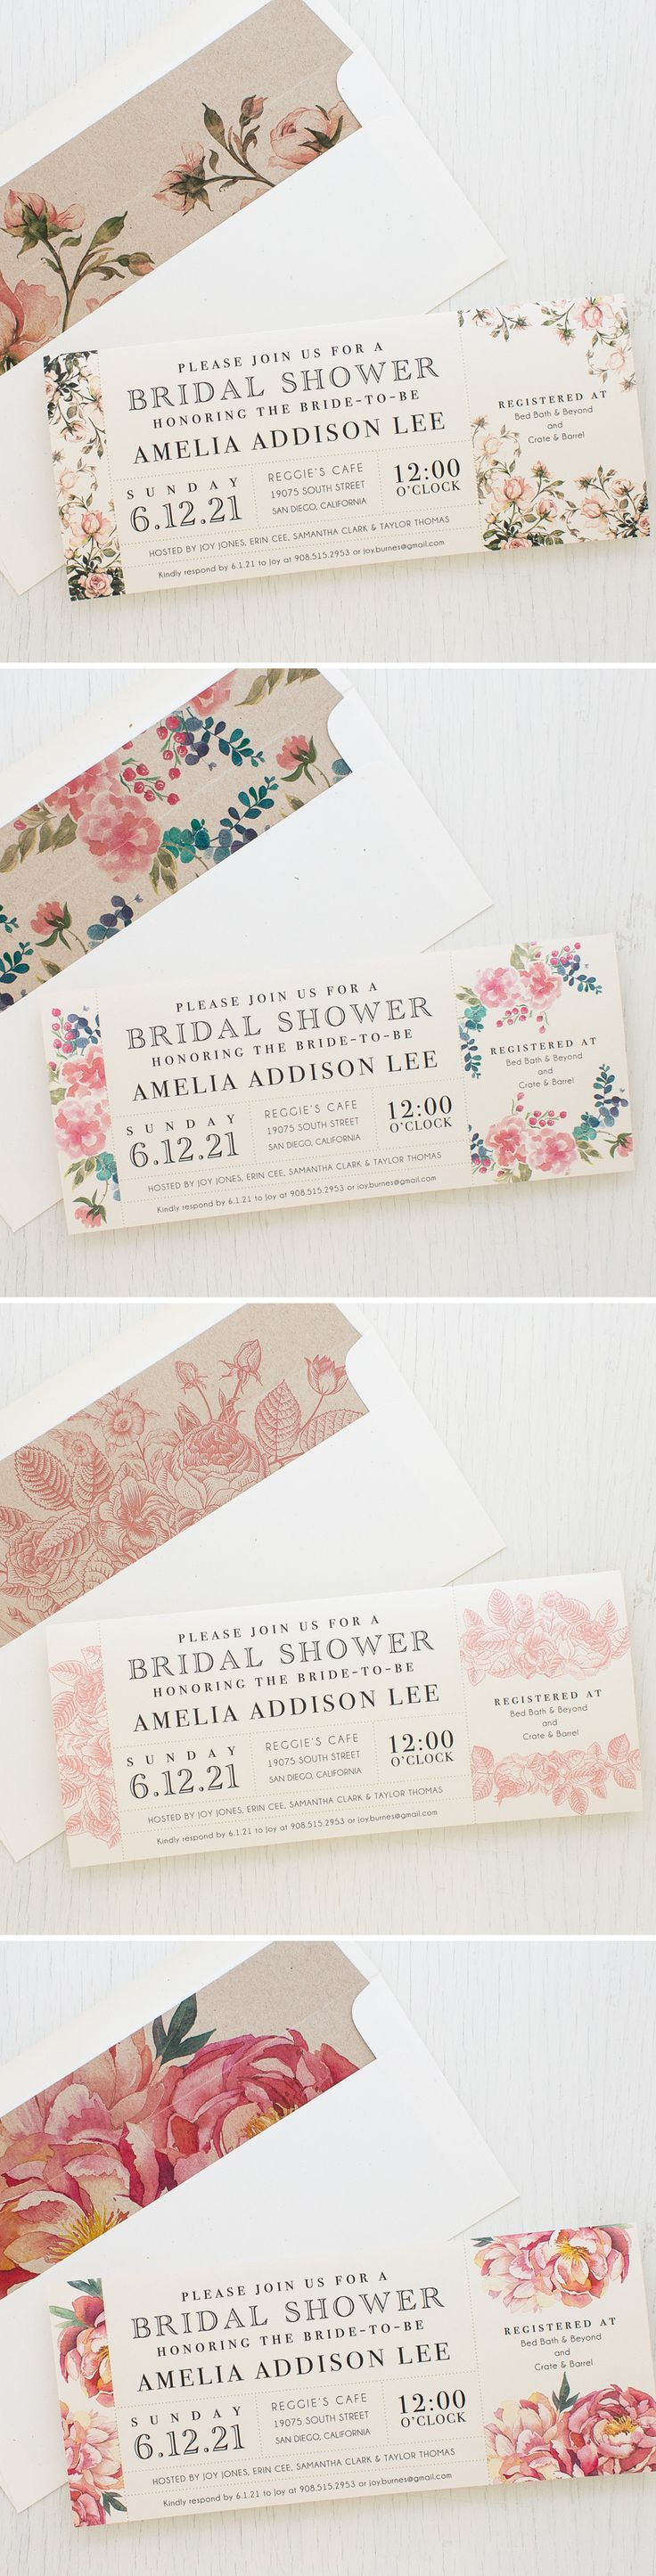 Garden Roses Bridal Shower Invitations 32735 best